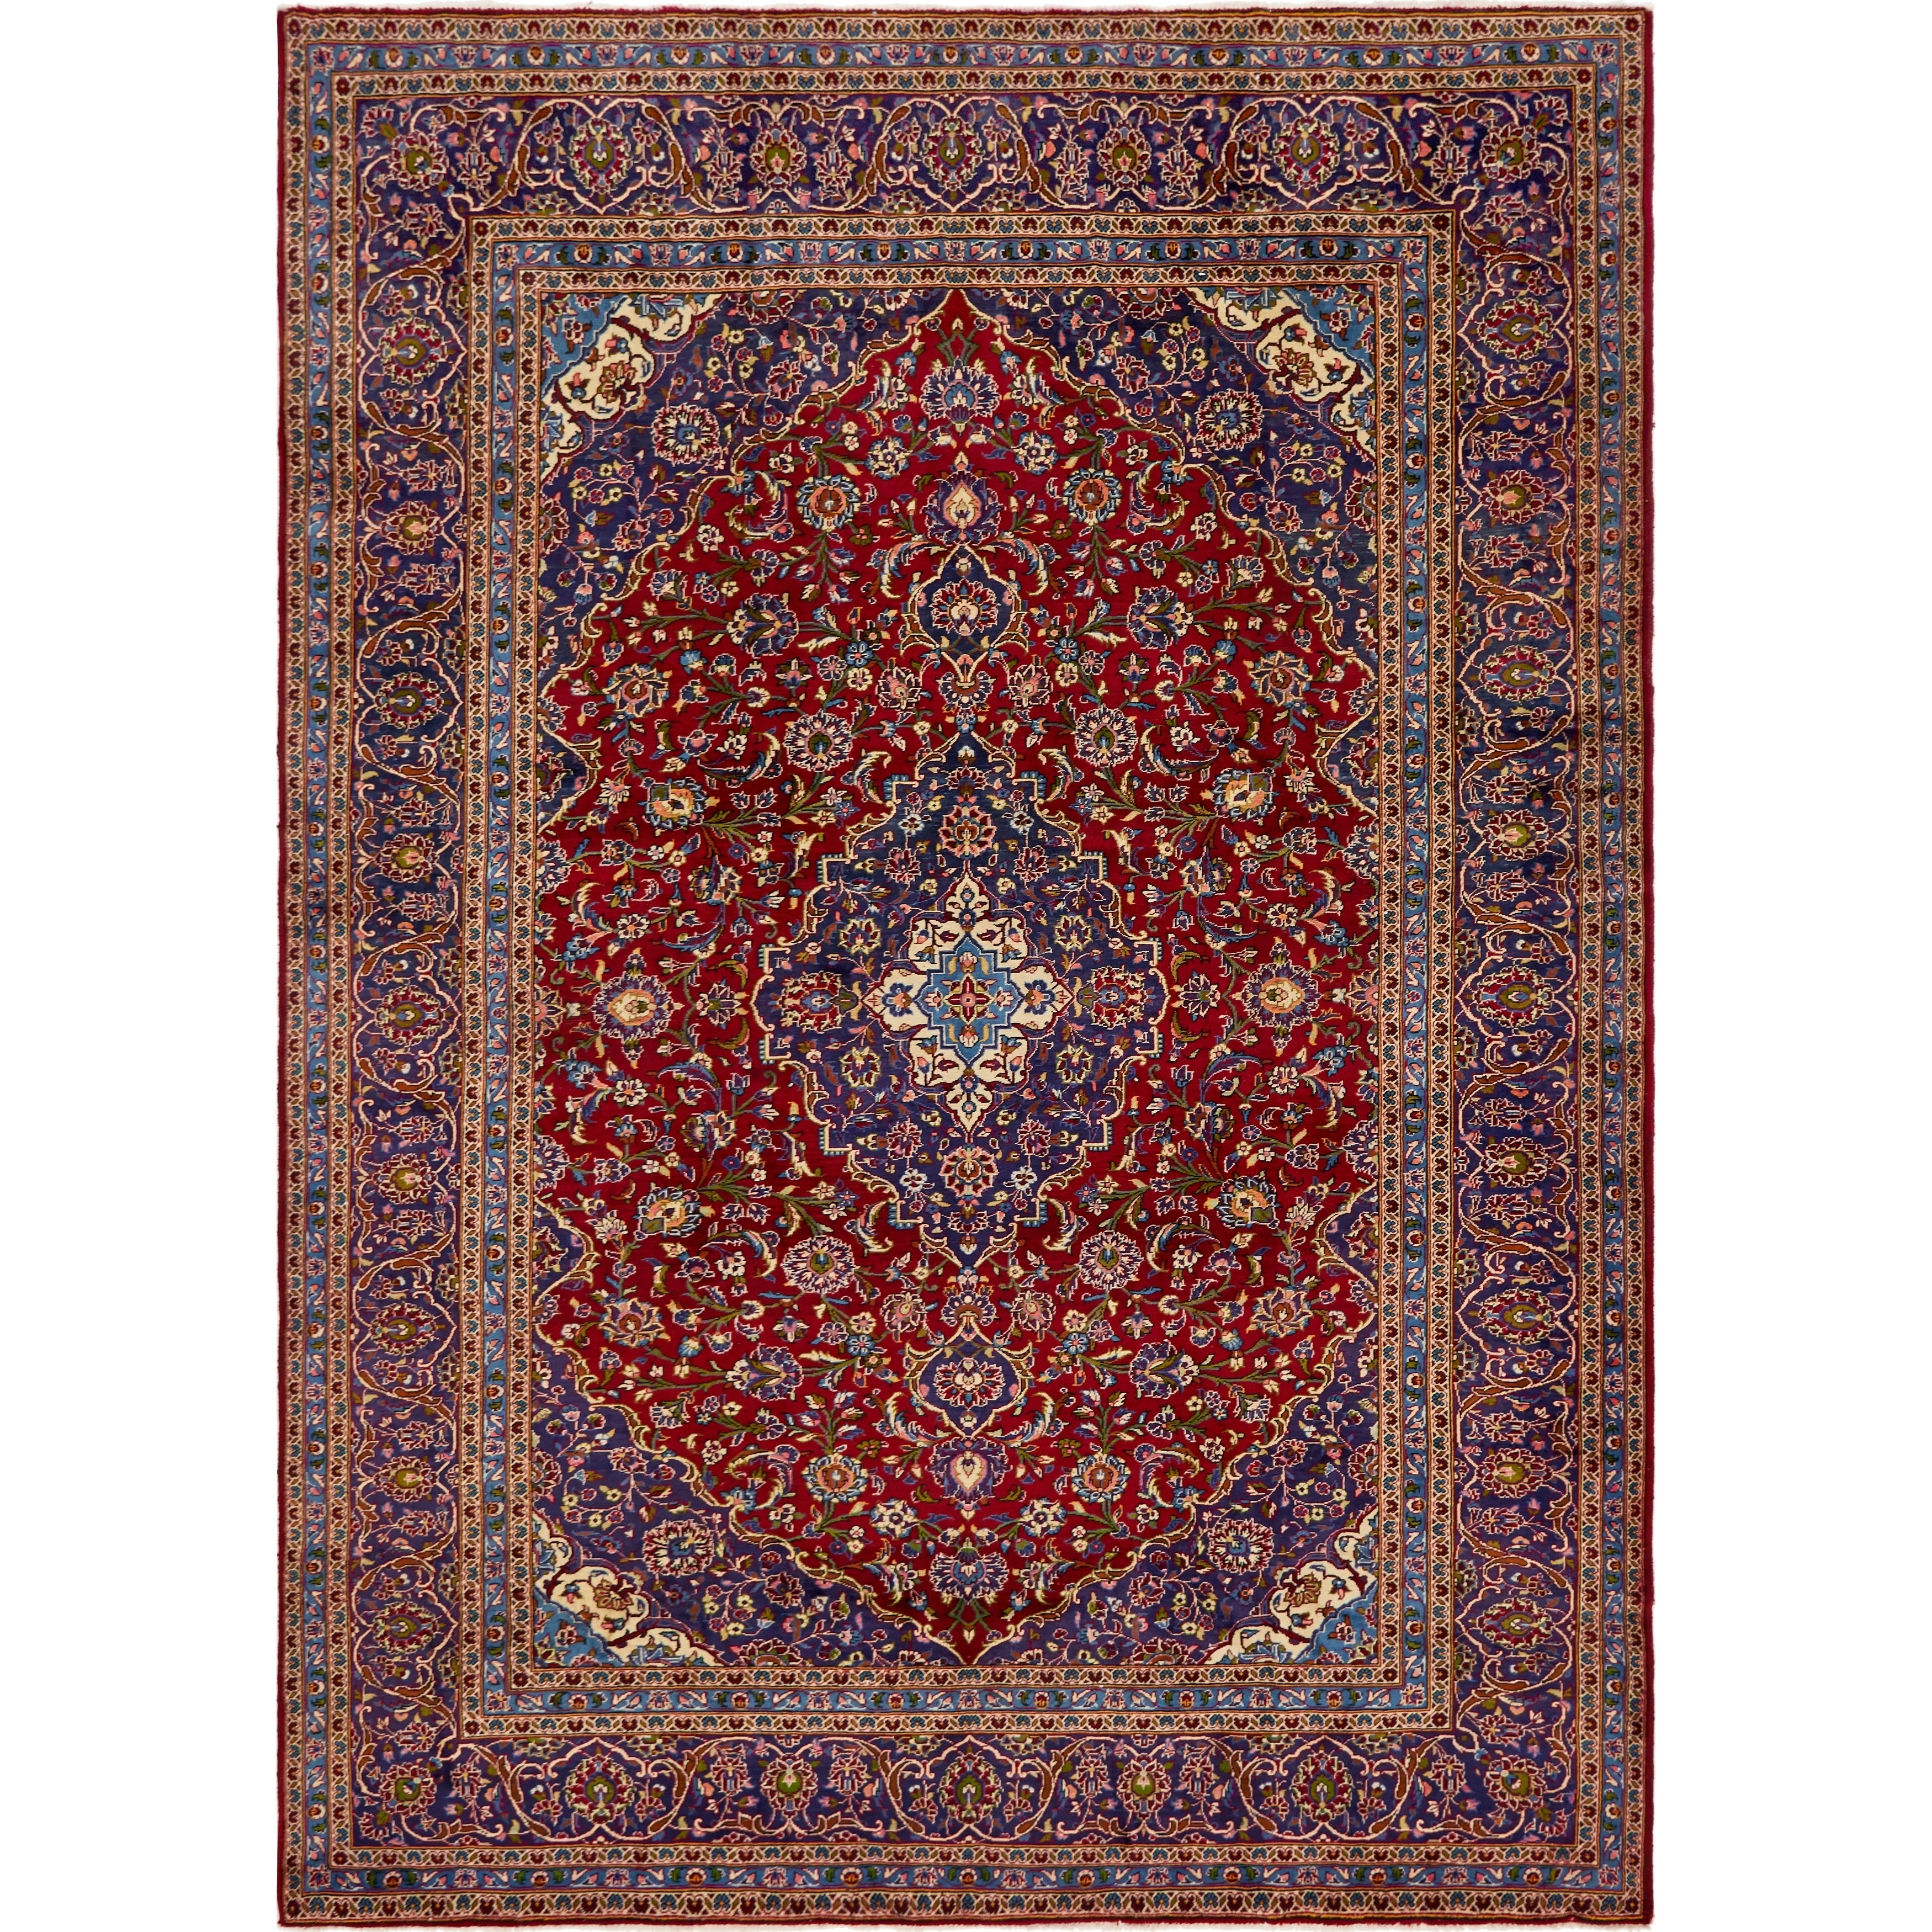 Hand Knotted Kashan Semi Antique Wool Area Rug - 9 9 x 13 3 (Red - 9 9 x 13 3)